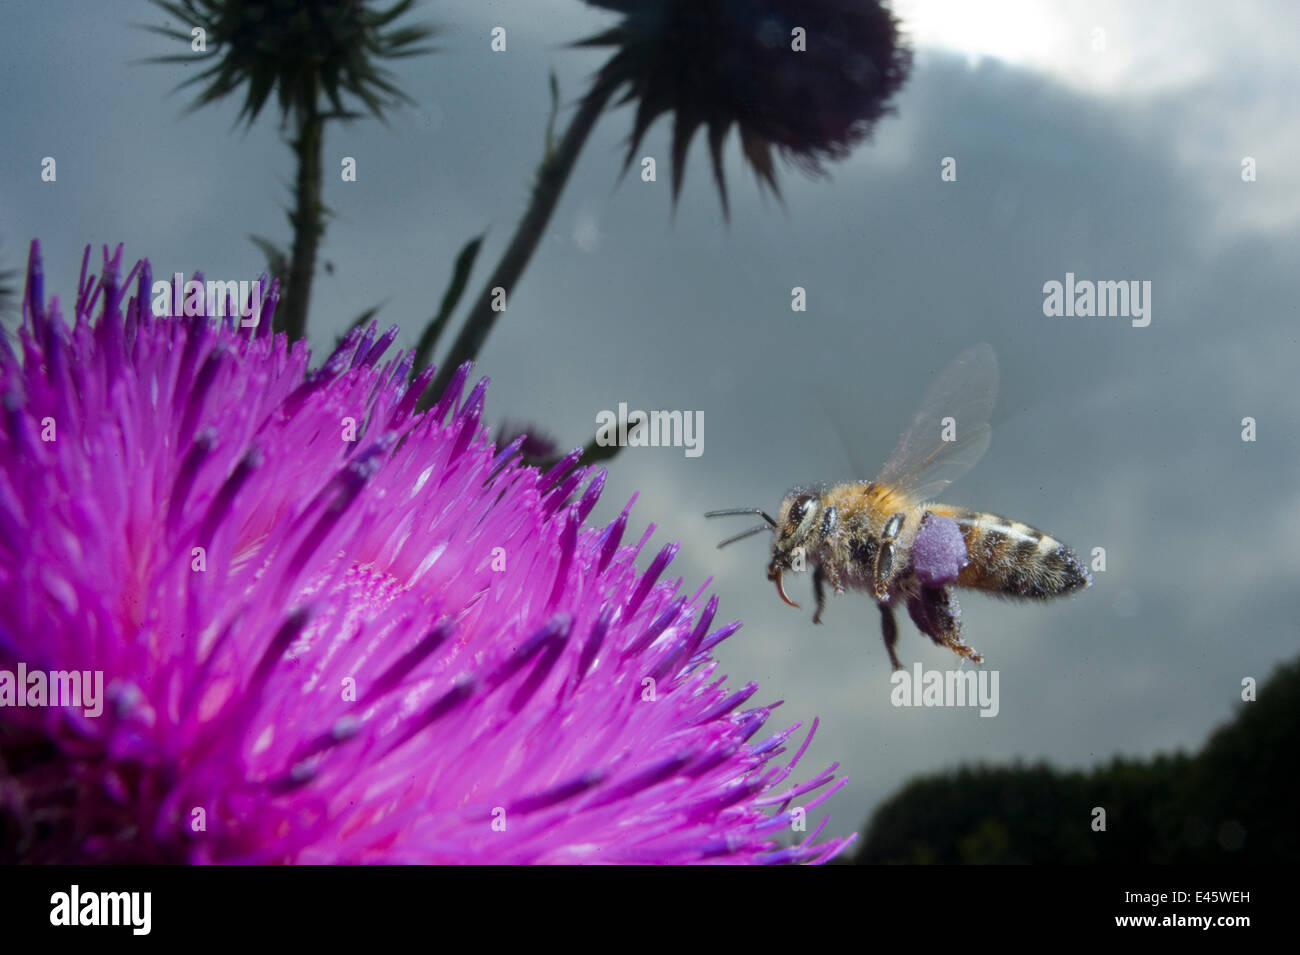 Abeille à miel (Apis mellifera) planant au-dessus d'une fleur pourpre. Paris, France Photo Stock